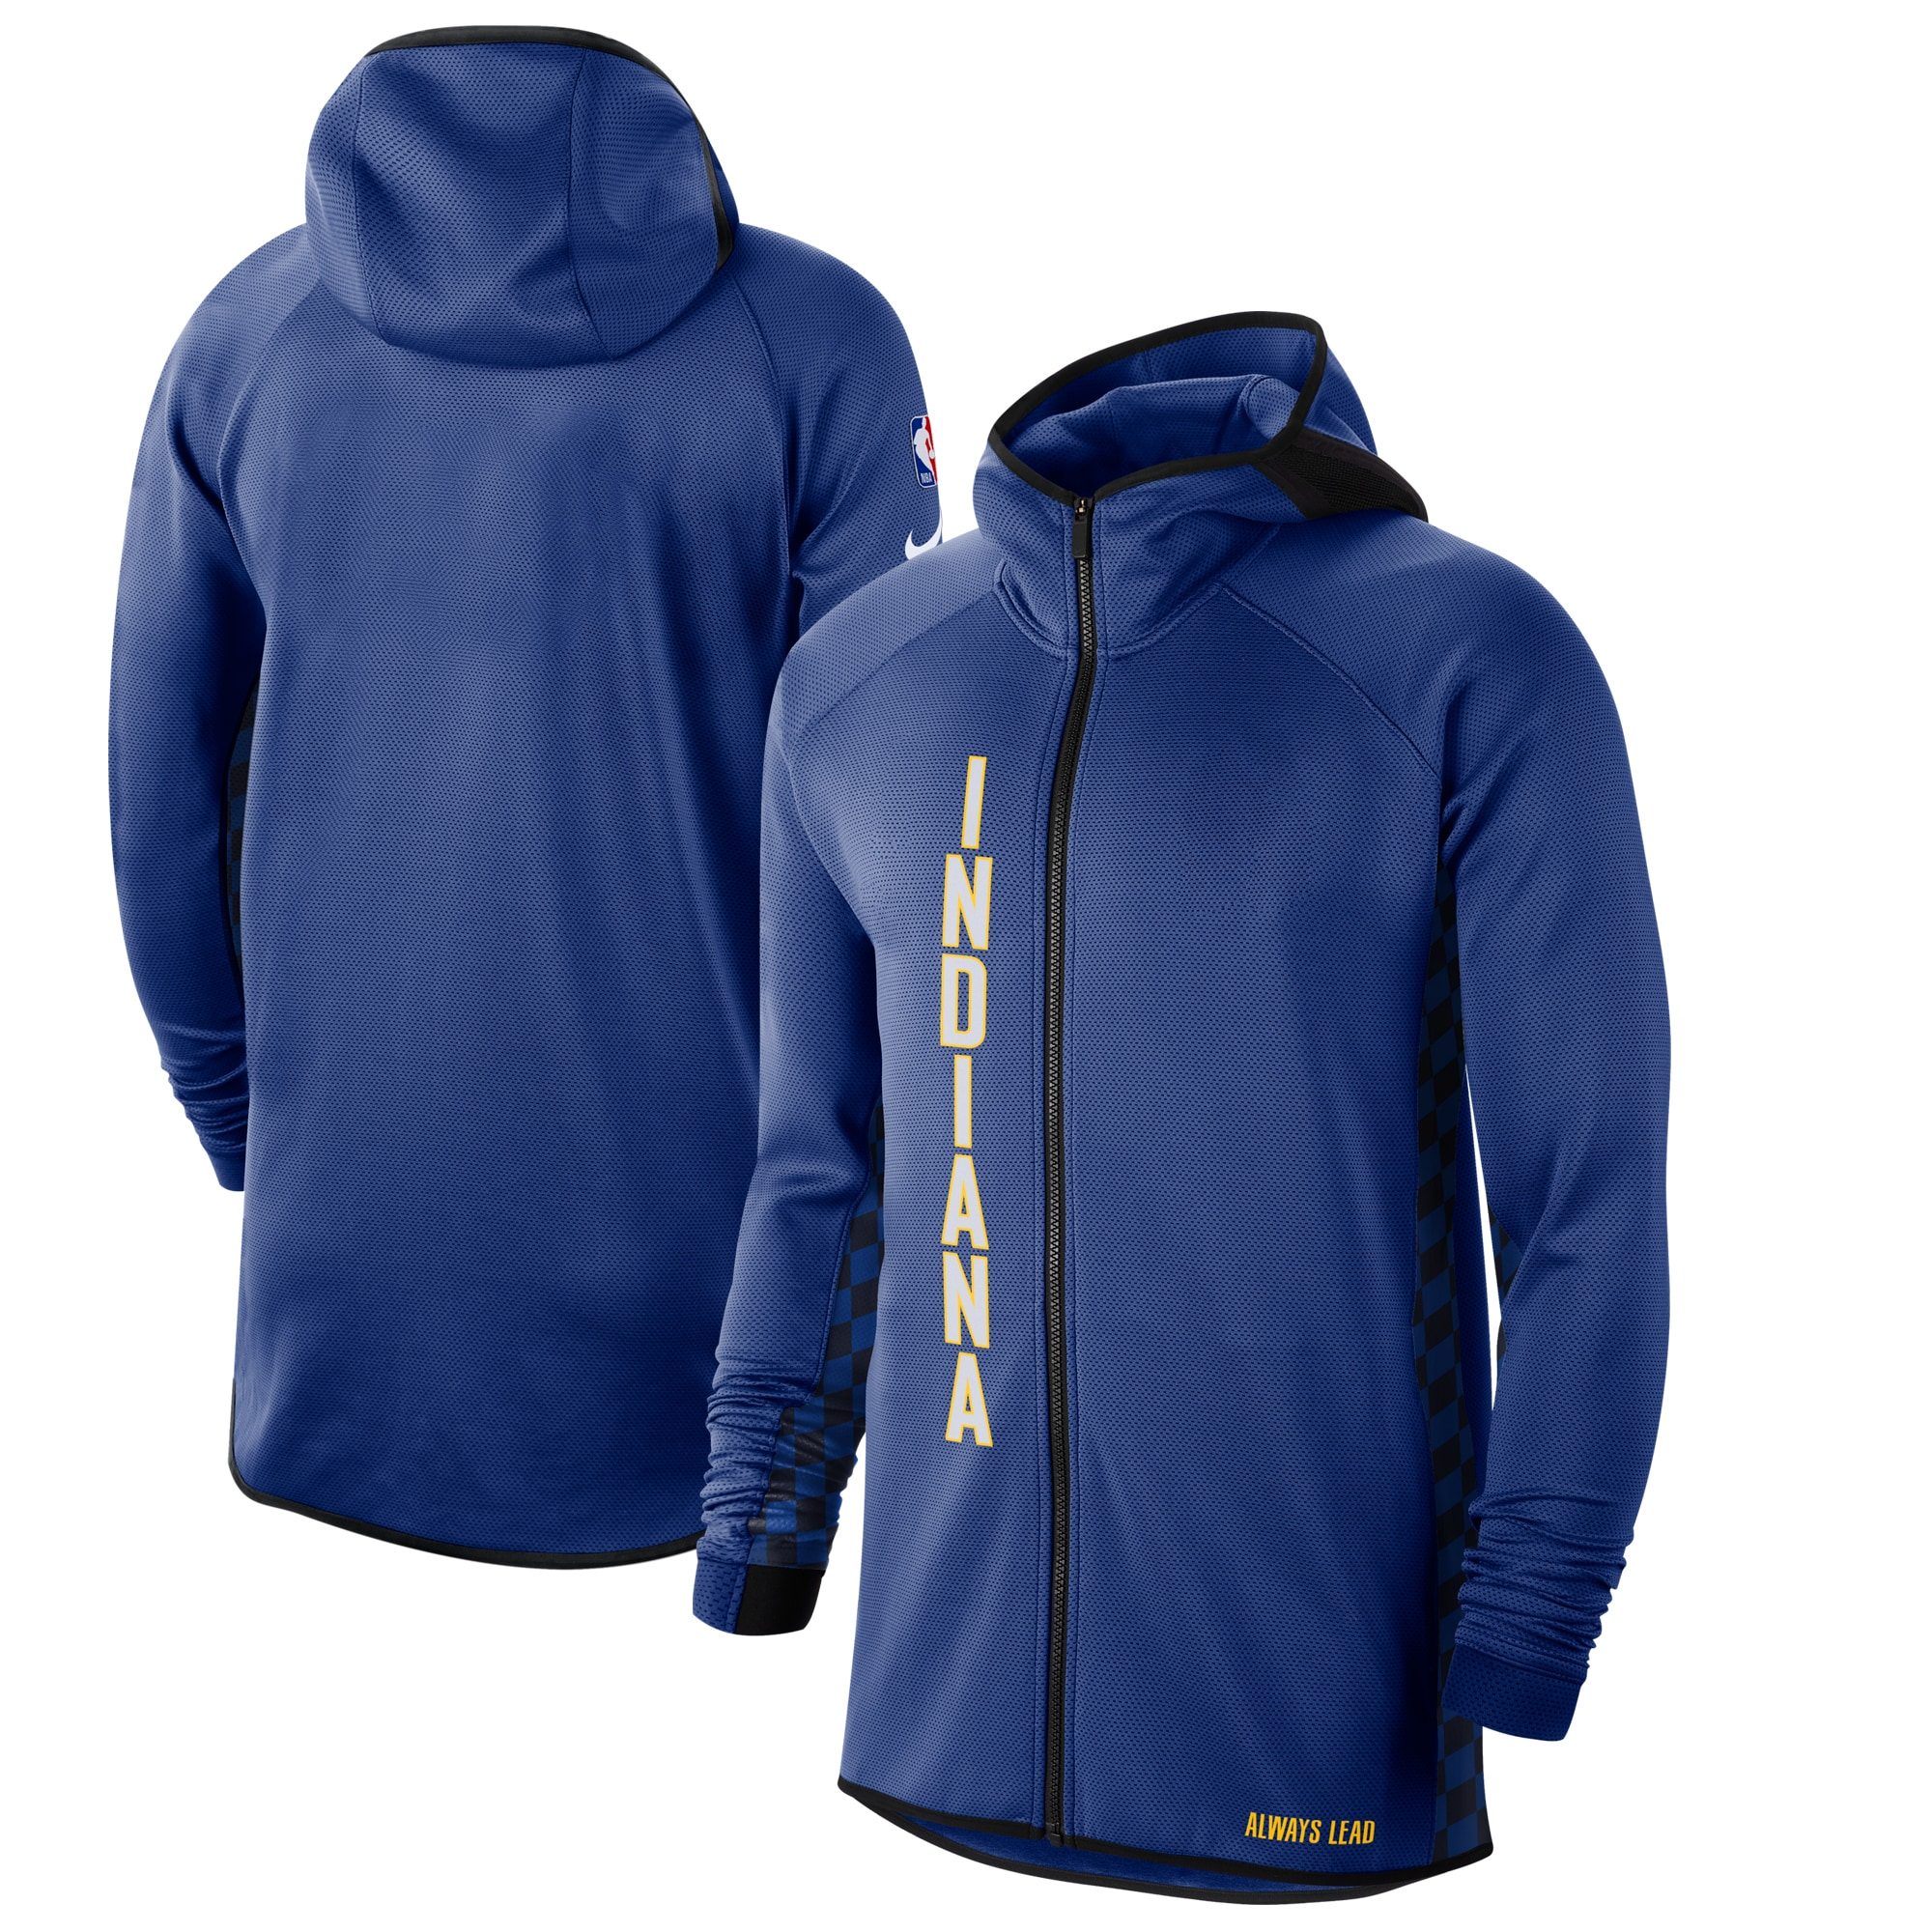 Indiana Pacers Nike 2019/20 Earned Edition Showtime Full-Zip Performance Hoodie - Blue/White